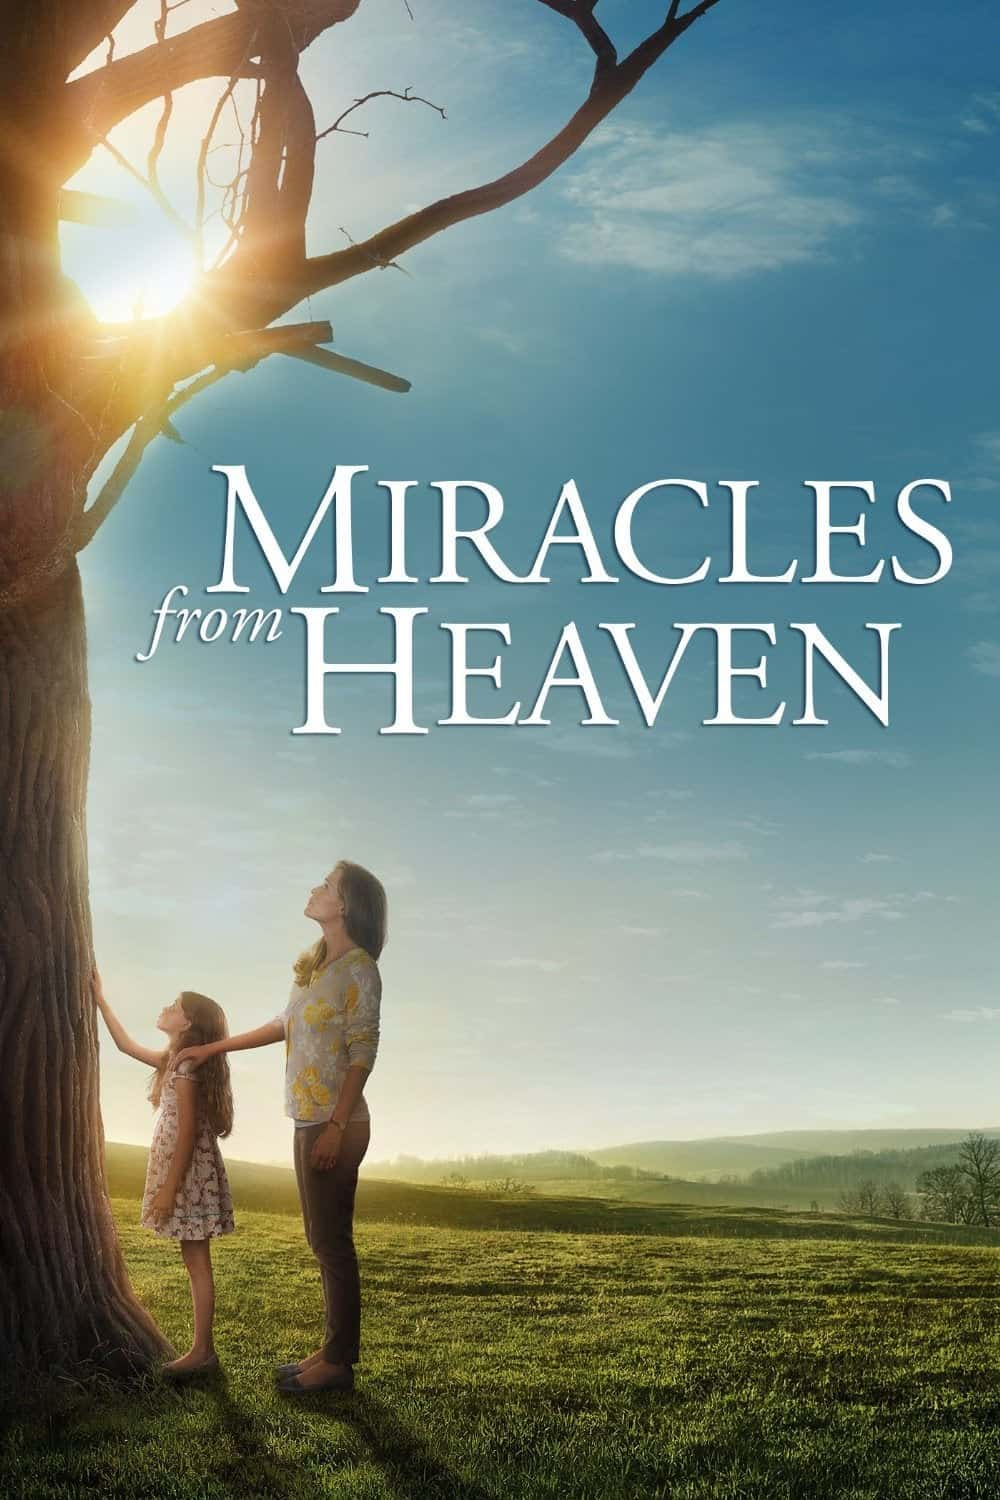 Miracles from Heaven, 2016